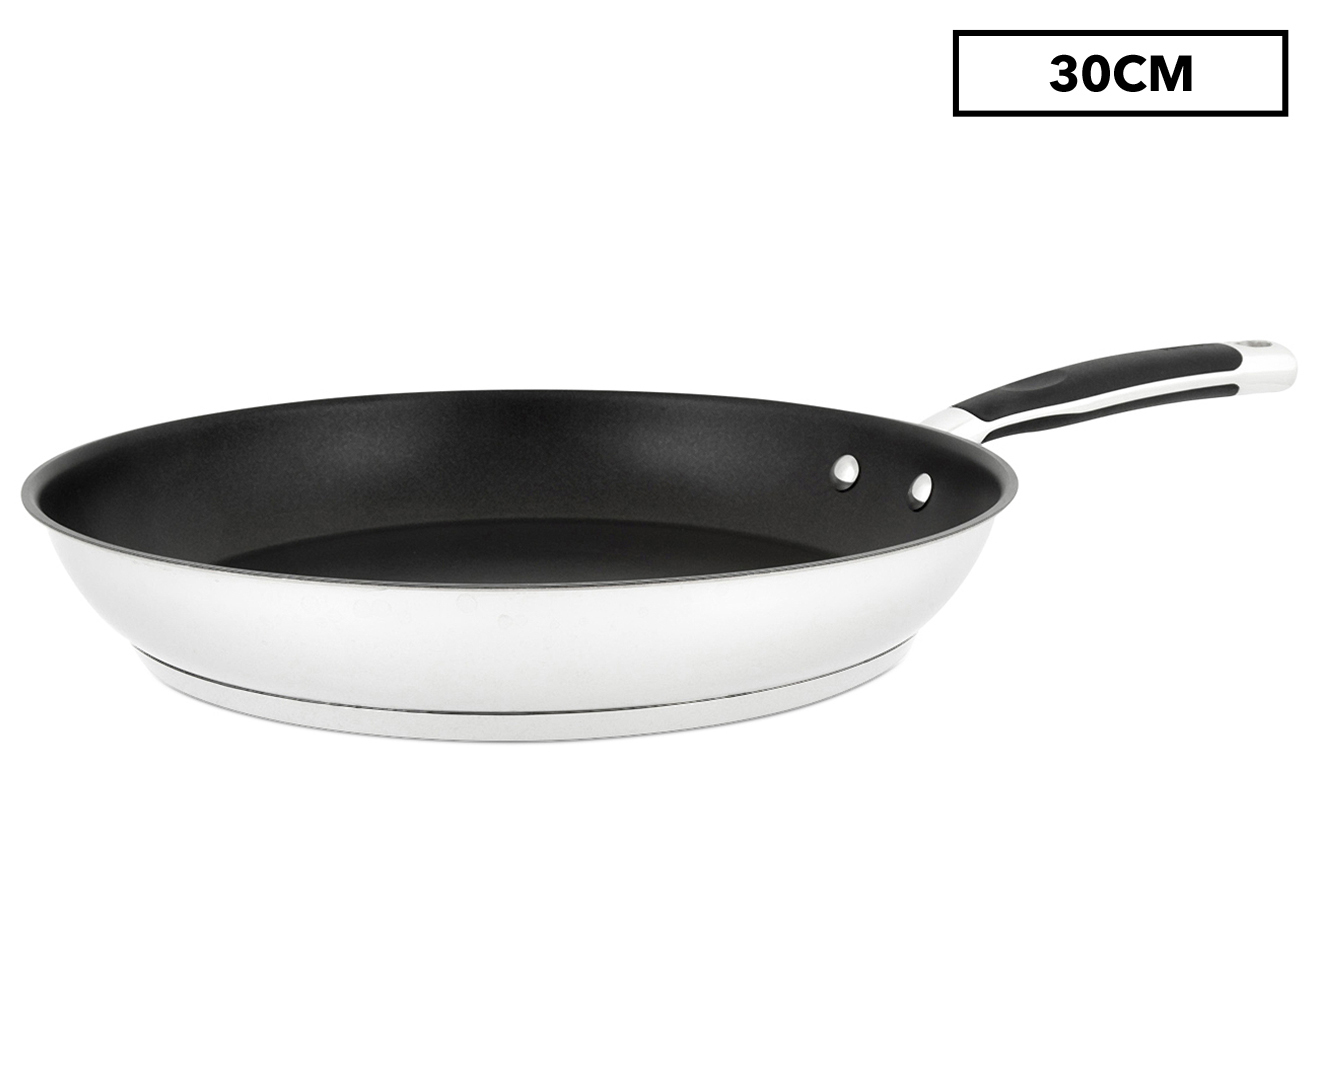 Tefal 30cm So Tasty Induction Frypan Thermospot